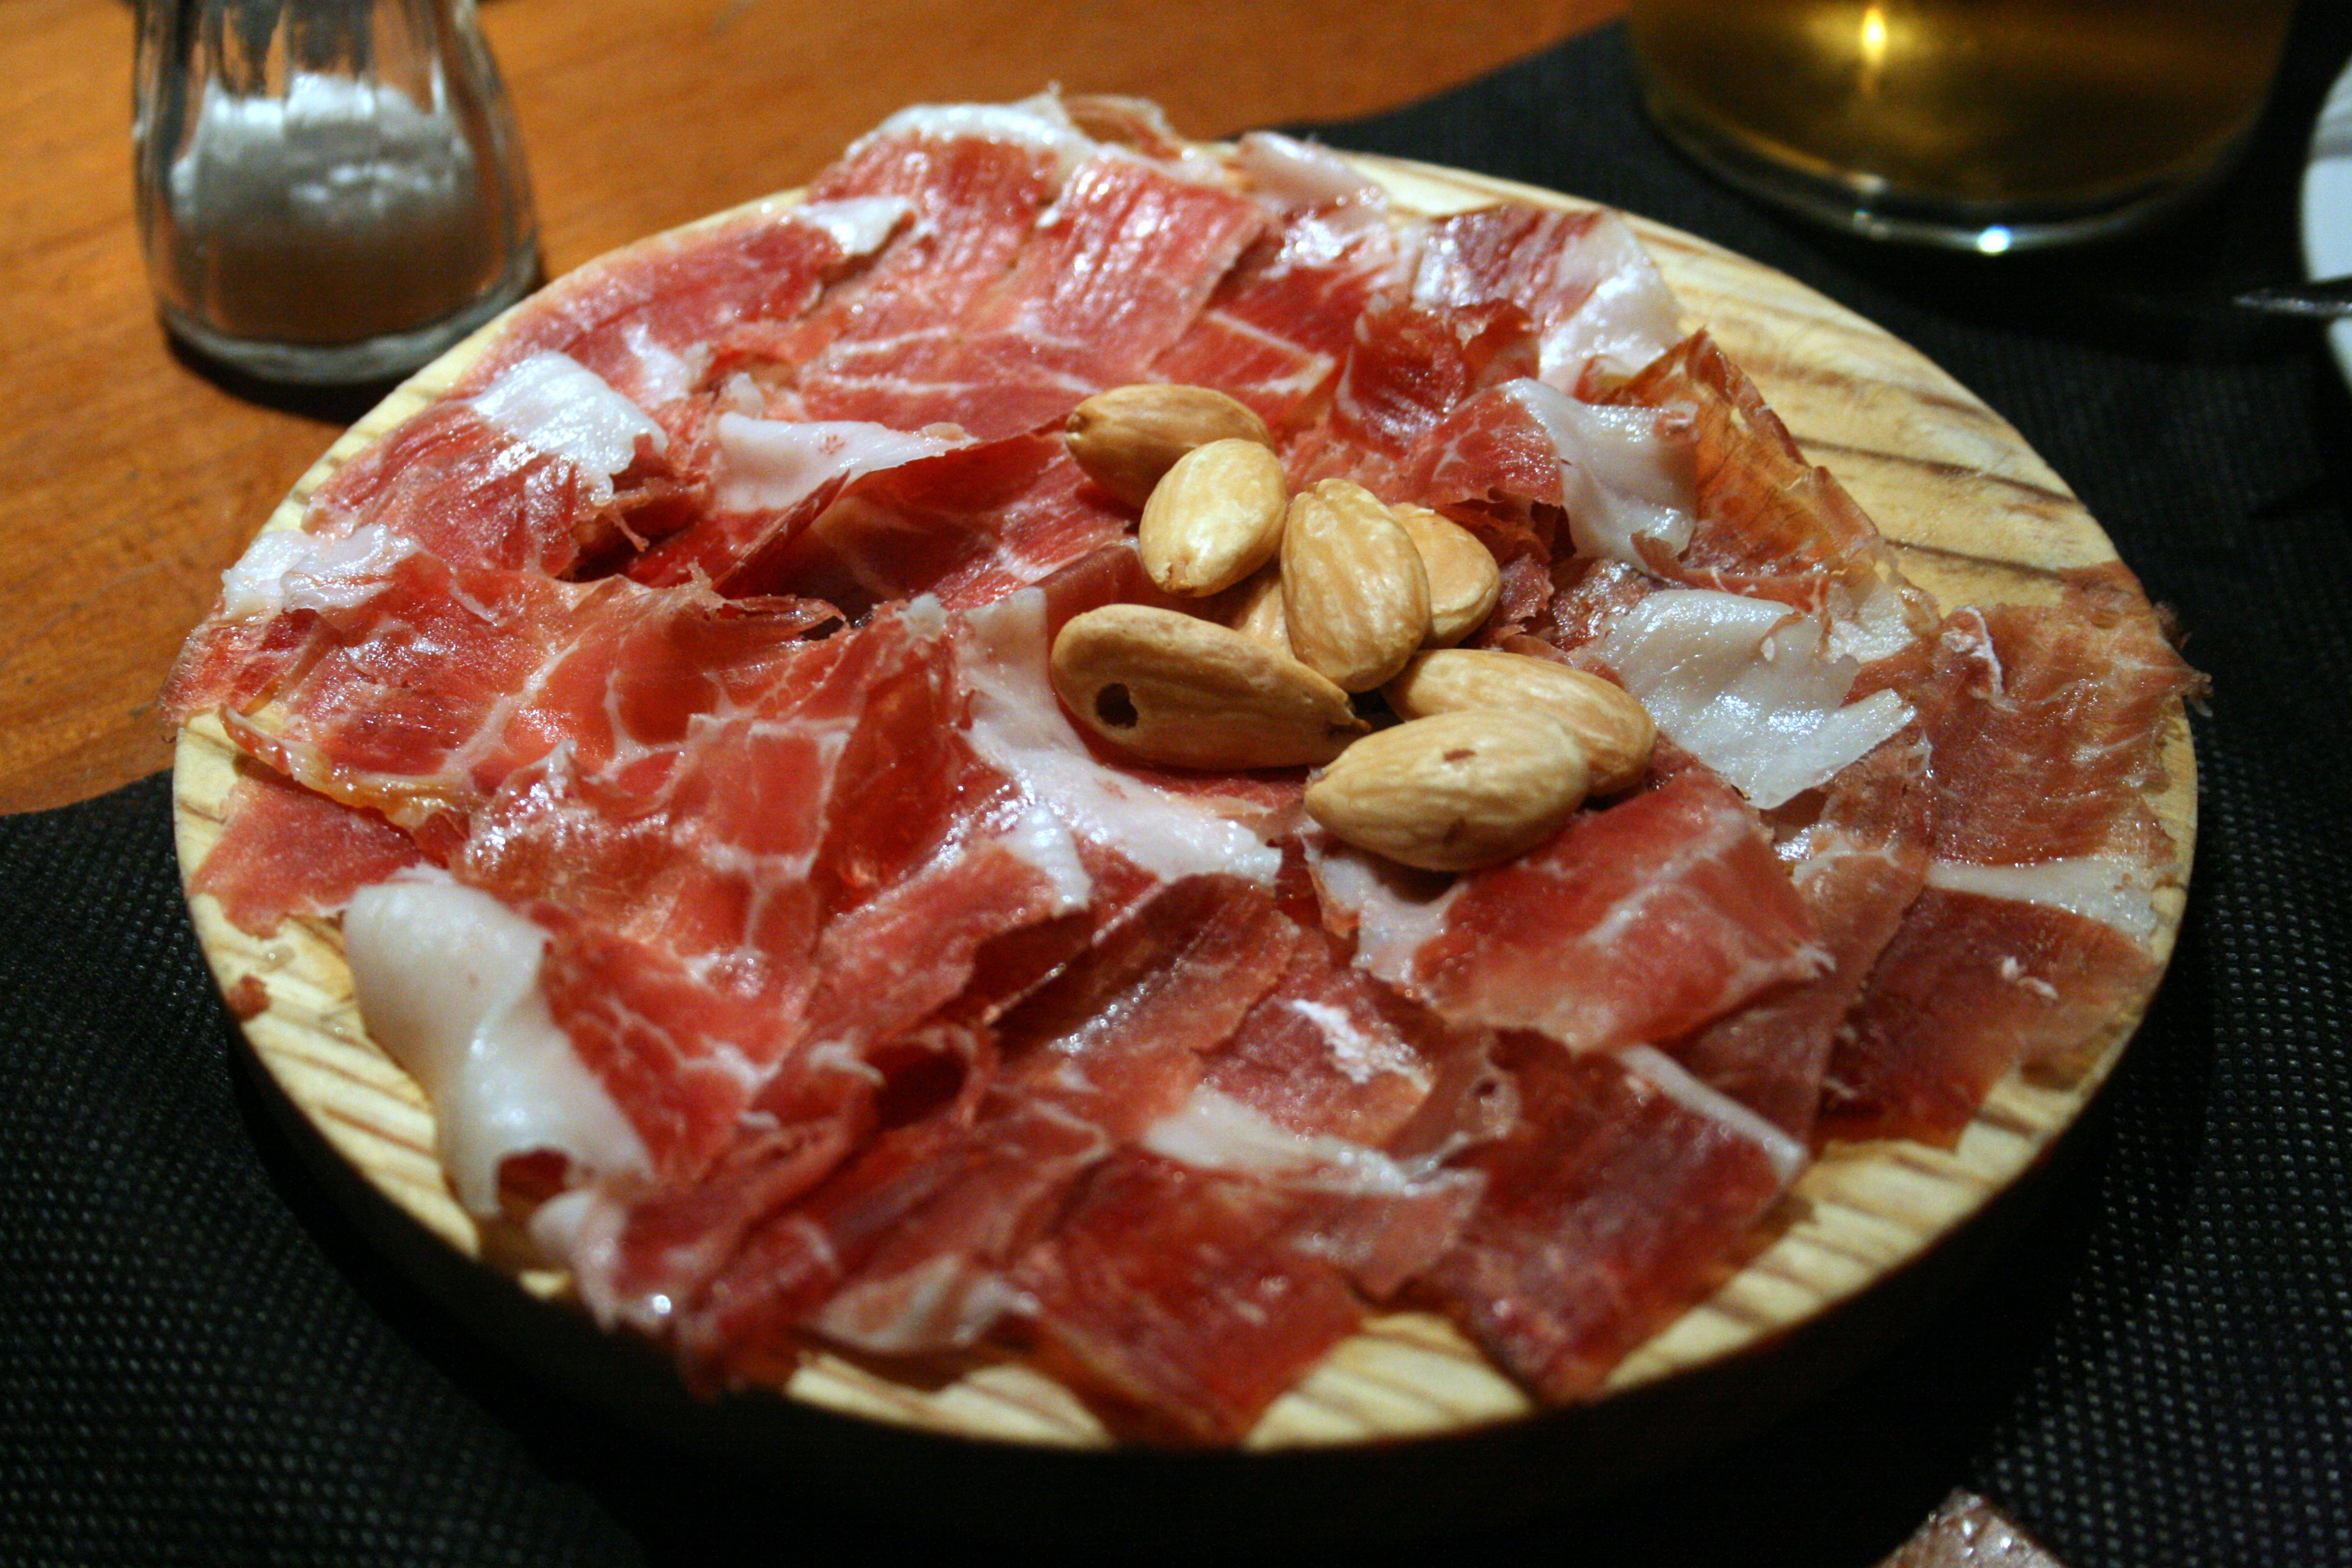 Can you take us here in spanish ham